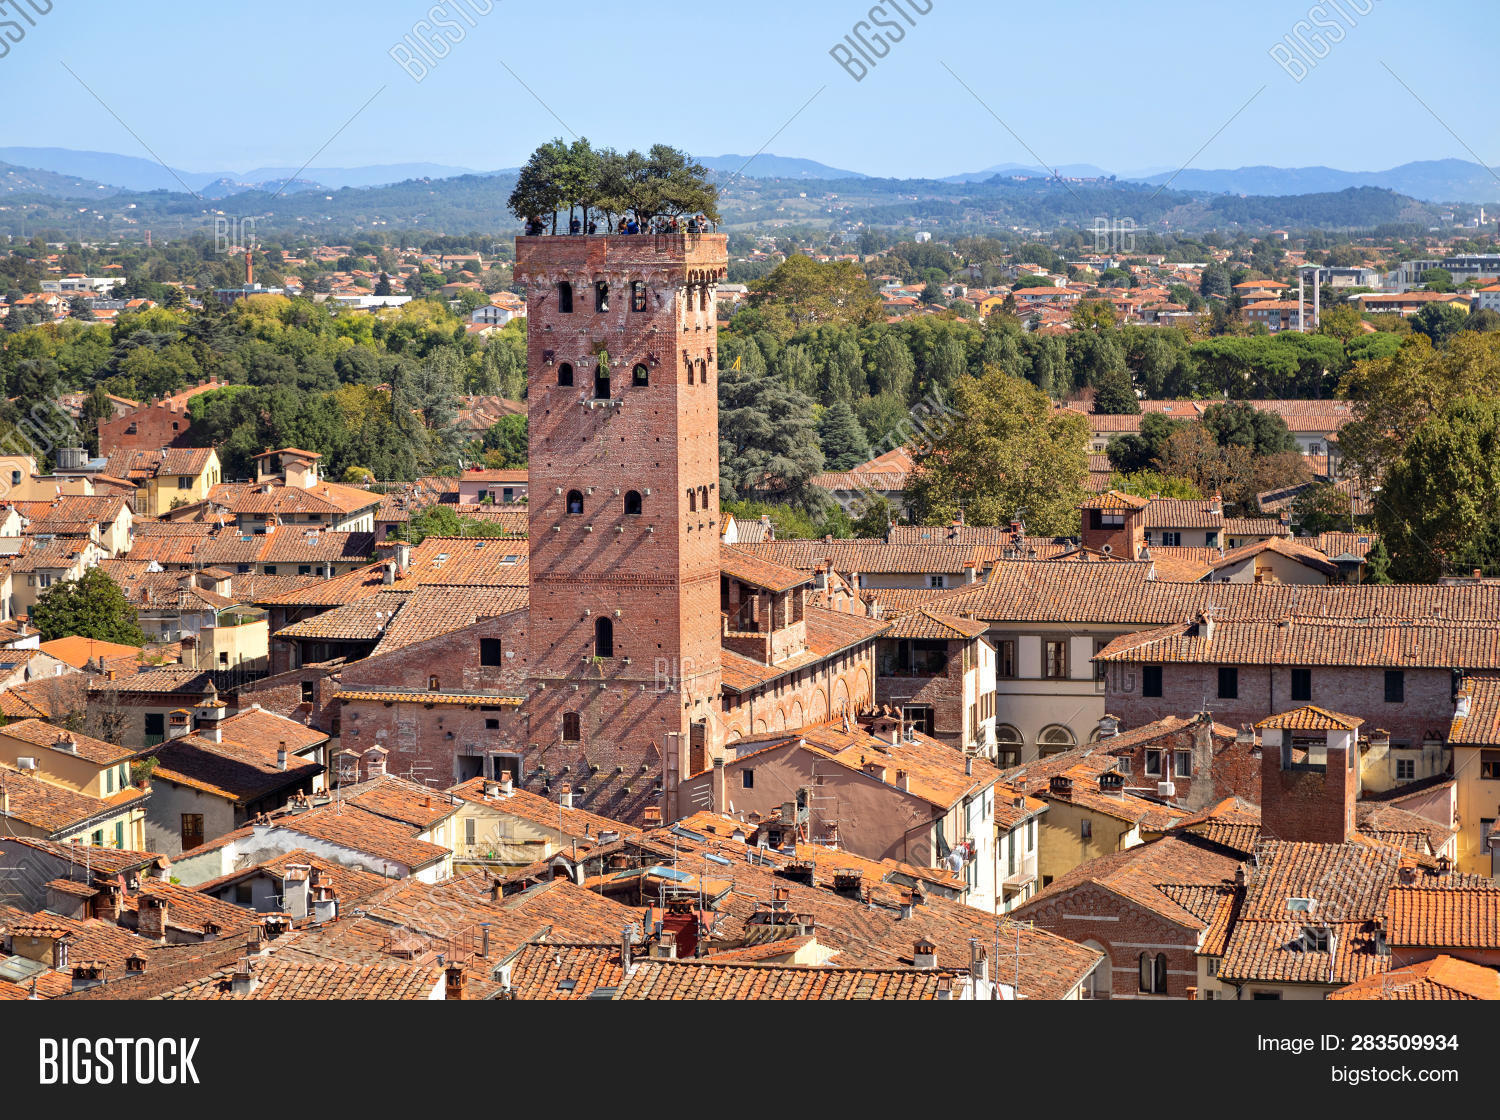 Guinigi,Torre,aerial,architecture,brick,city,cityscape,day,europe,holm-oak,italy,landmark,lucca,medieval,oak,summer,sunny,toscana,tower,trees,tuscany,view